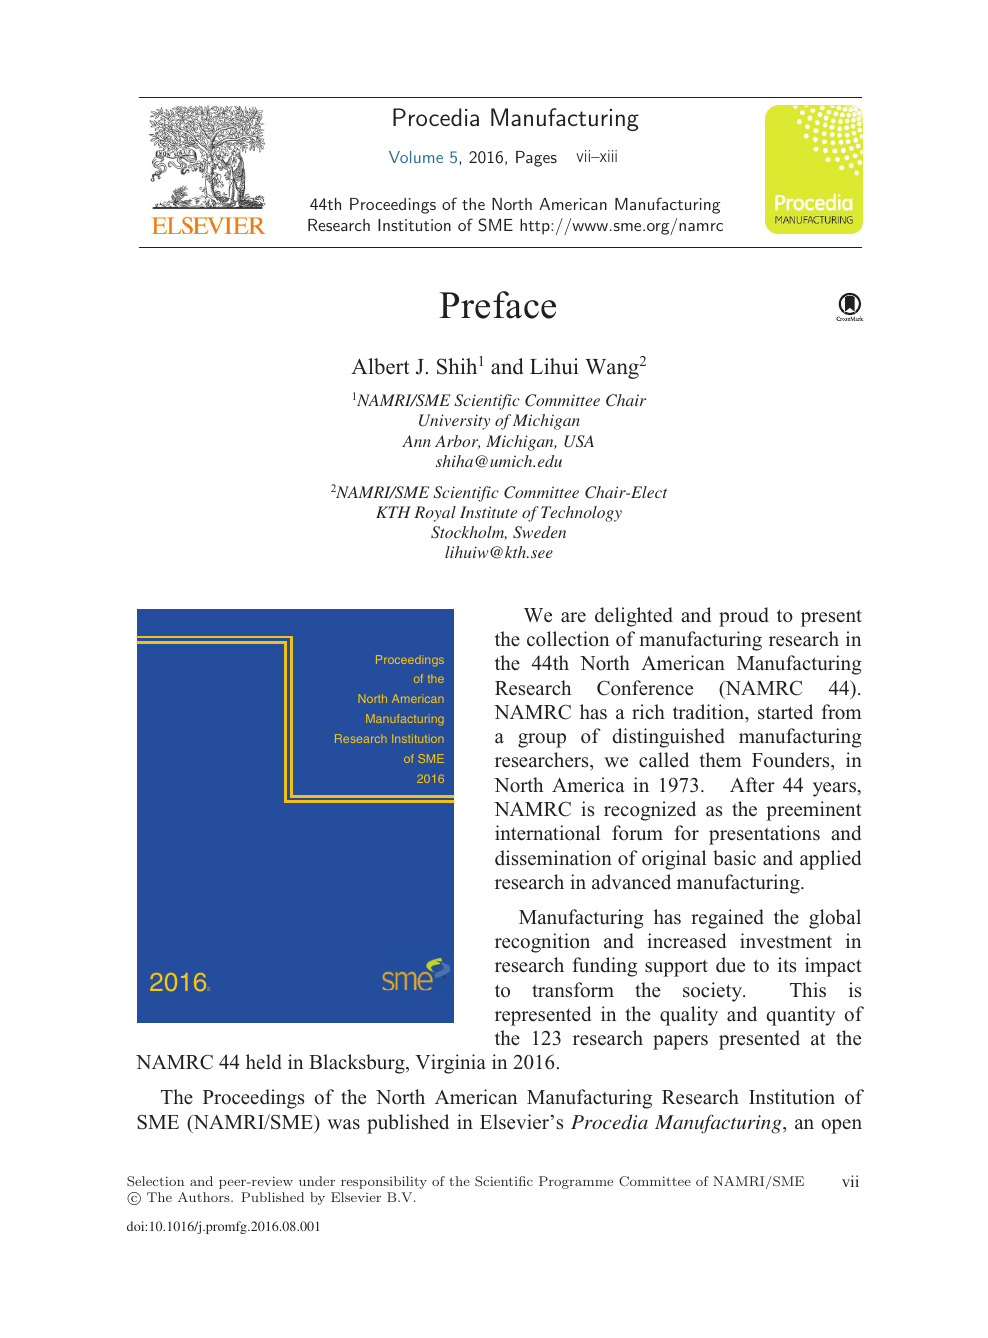 Preface – topic of research paper in Materials engineering